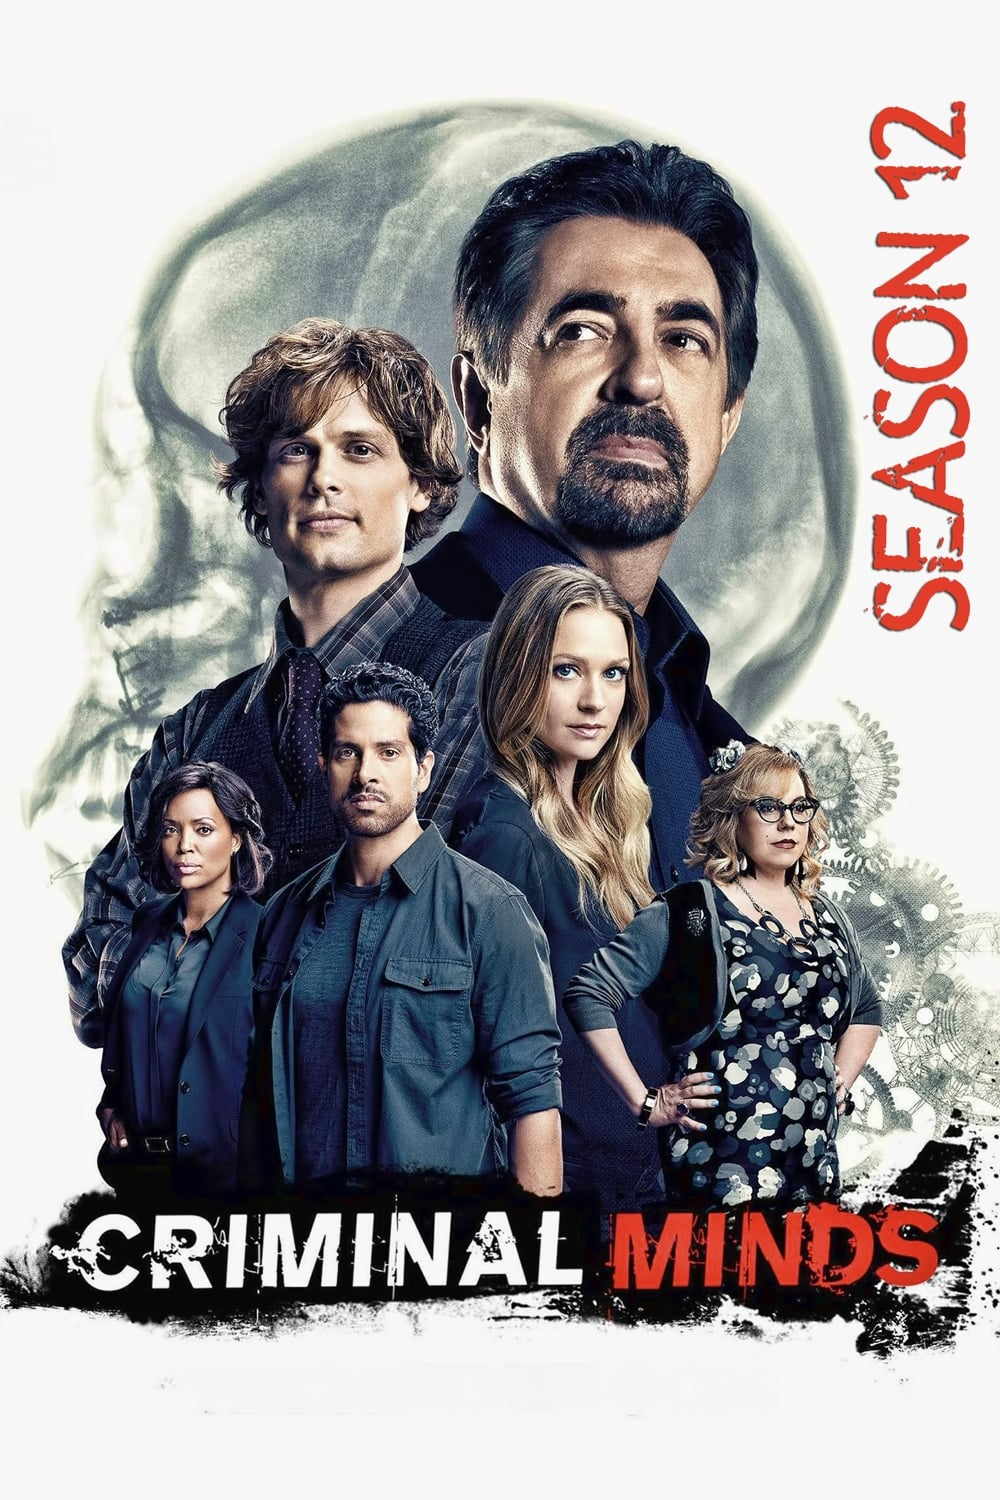 Watch Criminal Minds Season 2 Full Hd Quality Online Free Hdqputlocker